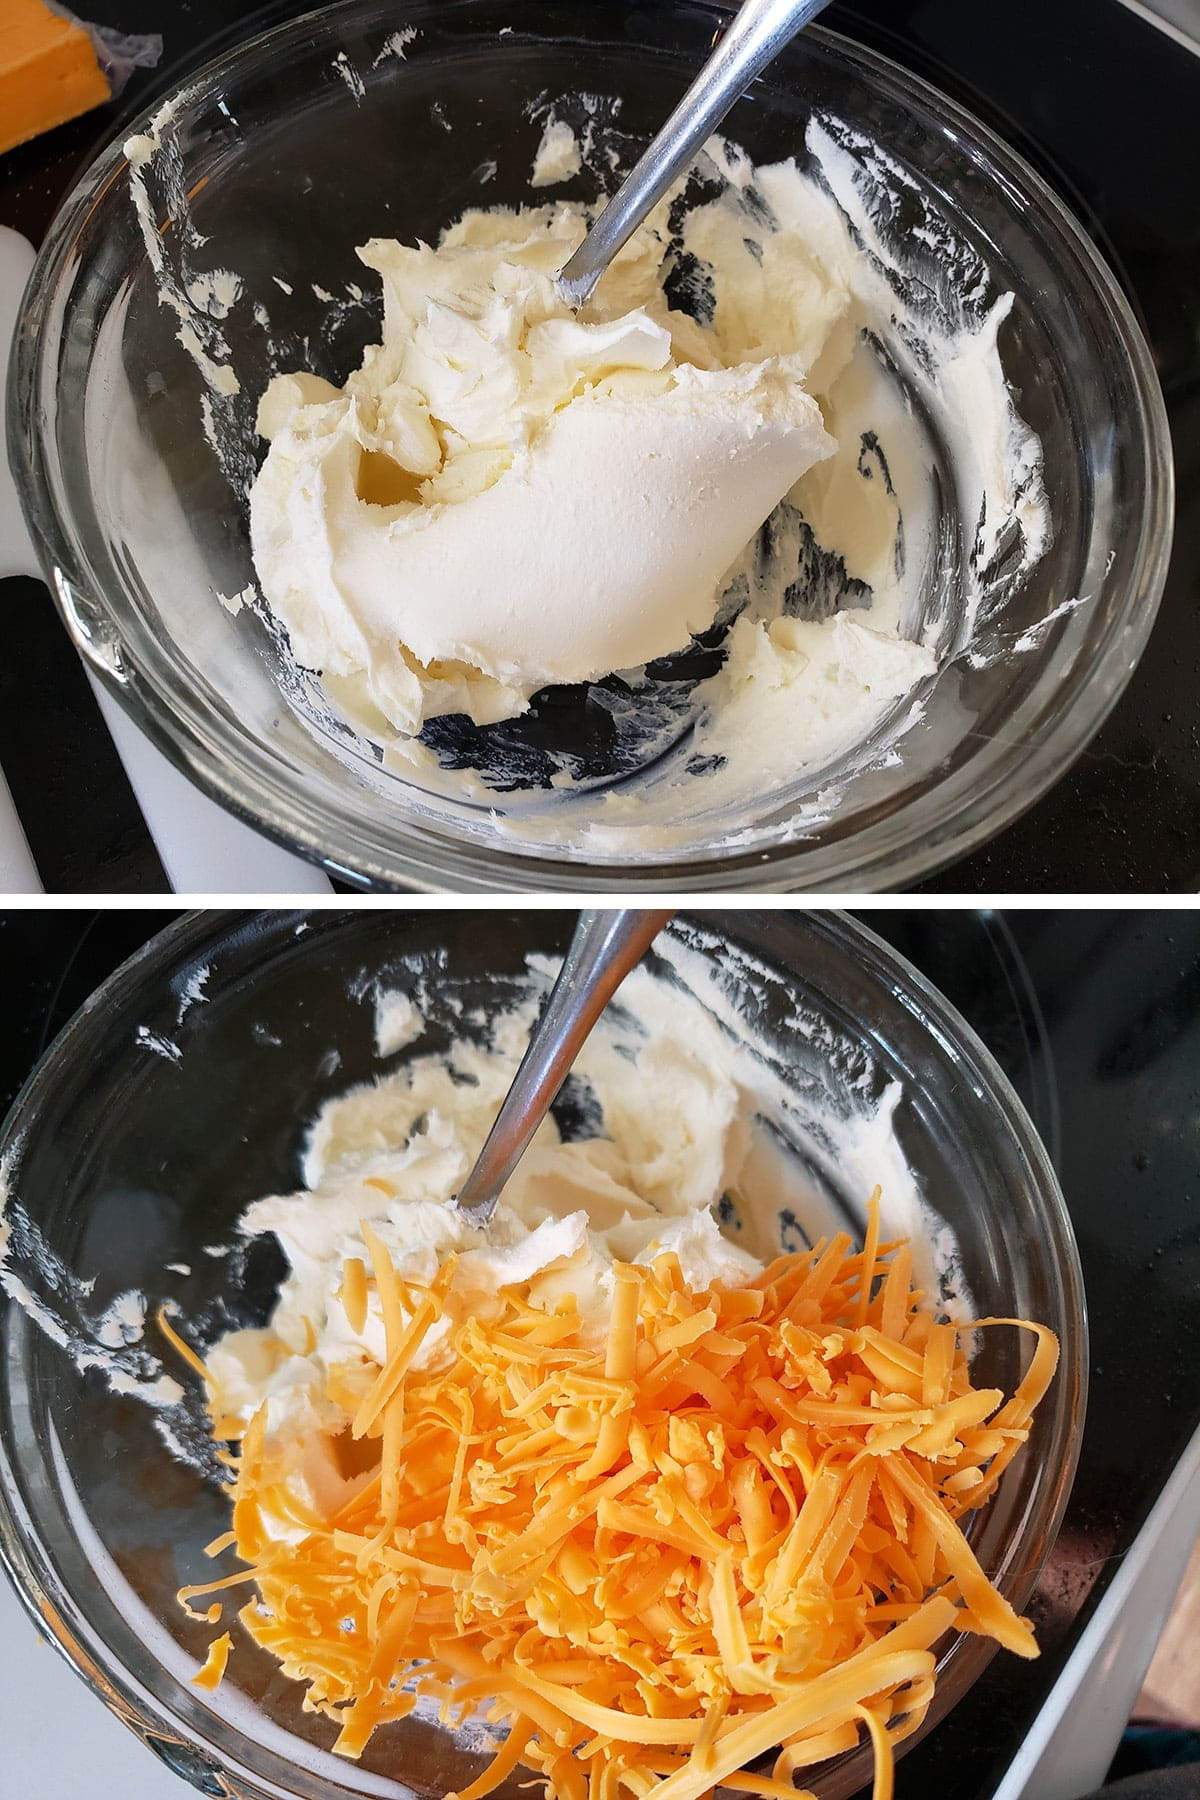 A two part image showing cream cheese being beaten, and cheddar cheese being added to it.